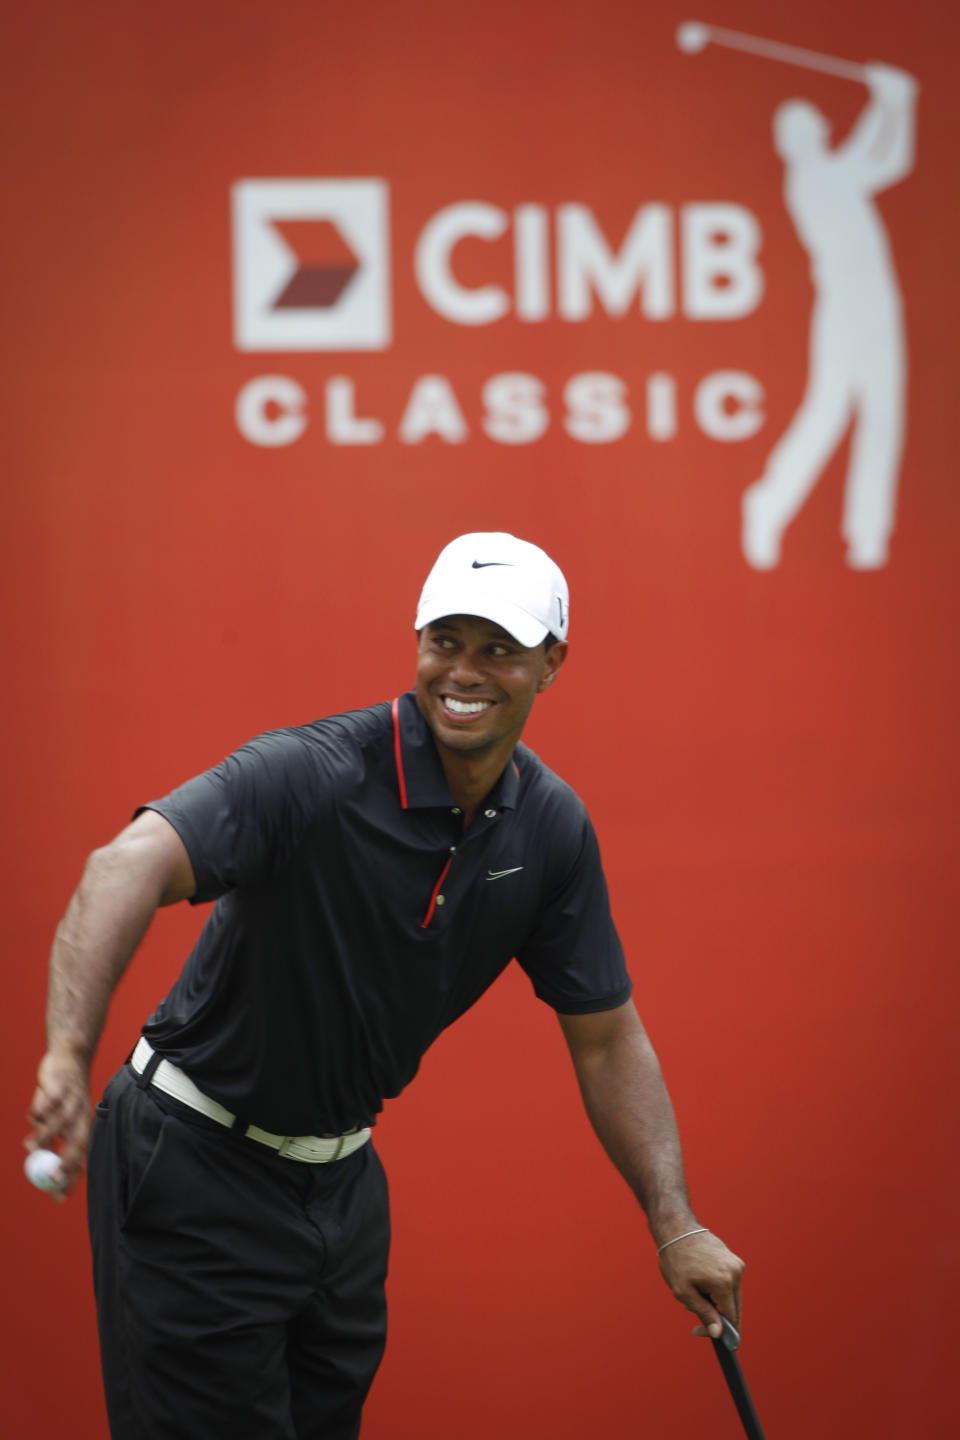 Tiger Woods of the United States smiles on the 18th hole during round two of CIMB Classic golf tournament at the Mines Resort and Golf Club in Kuala Lumpur, Malaysia, Friday, Oct. 26, 2012. (AP Photo/Vincent Thian)